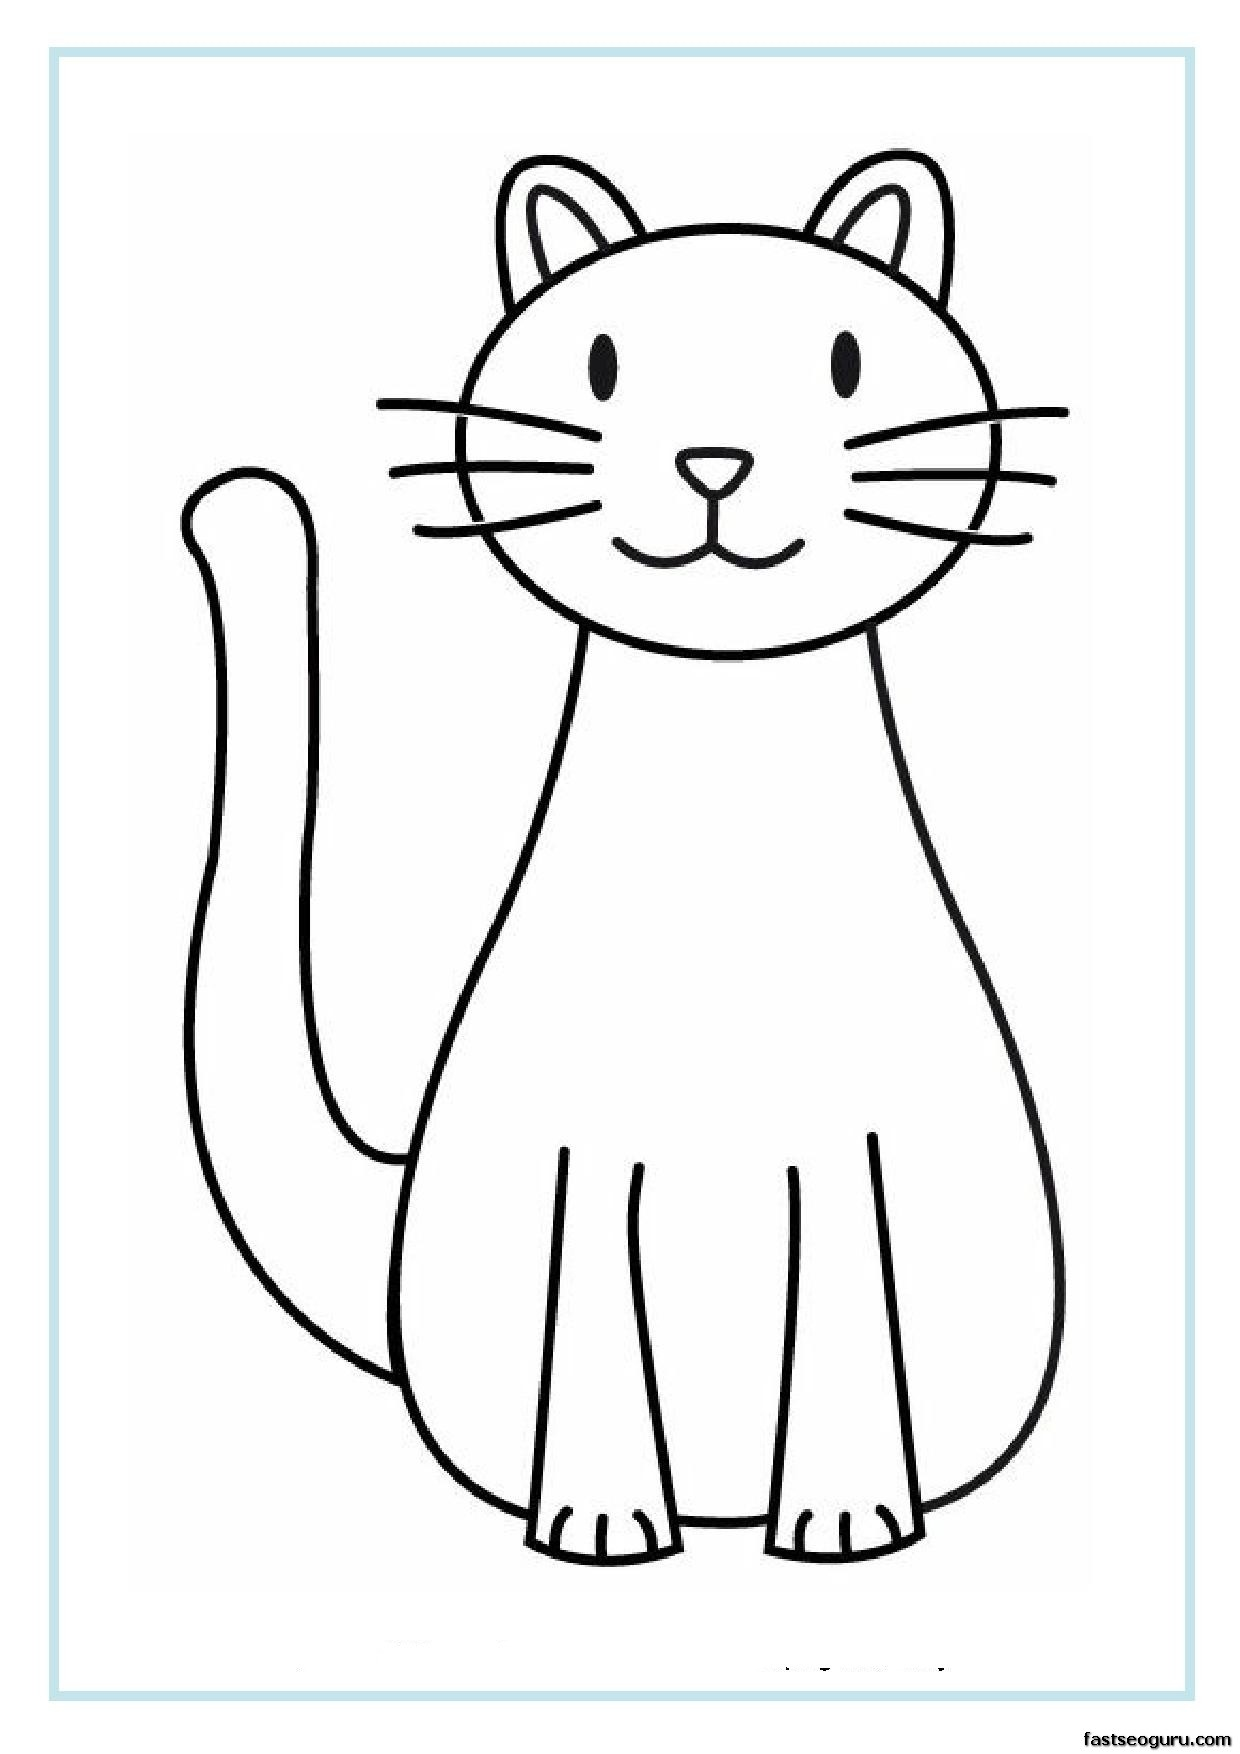 Free Free Printable Cat Pictures, Download Free Clip Art, Free Clip - Free Printable Cat Coloring Pages